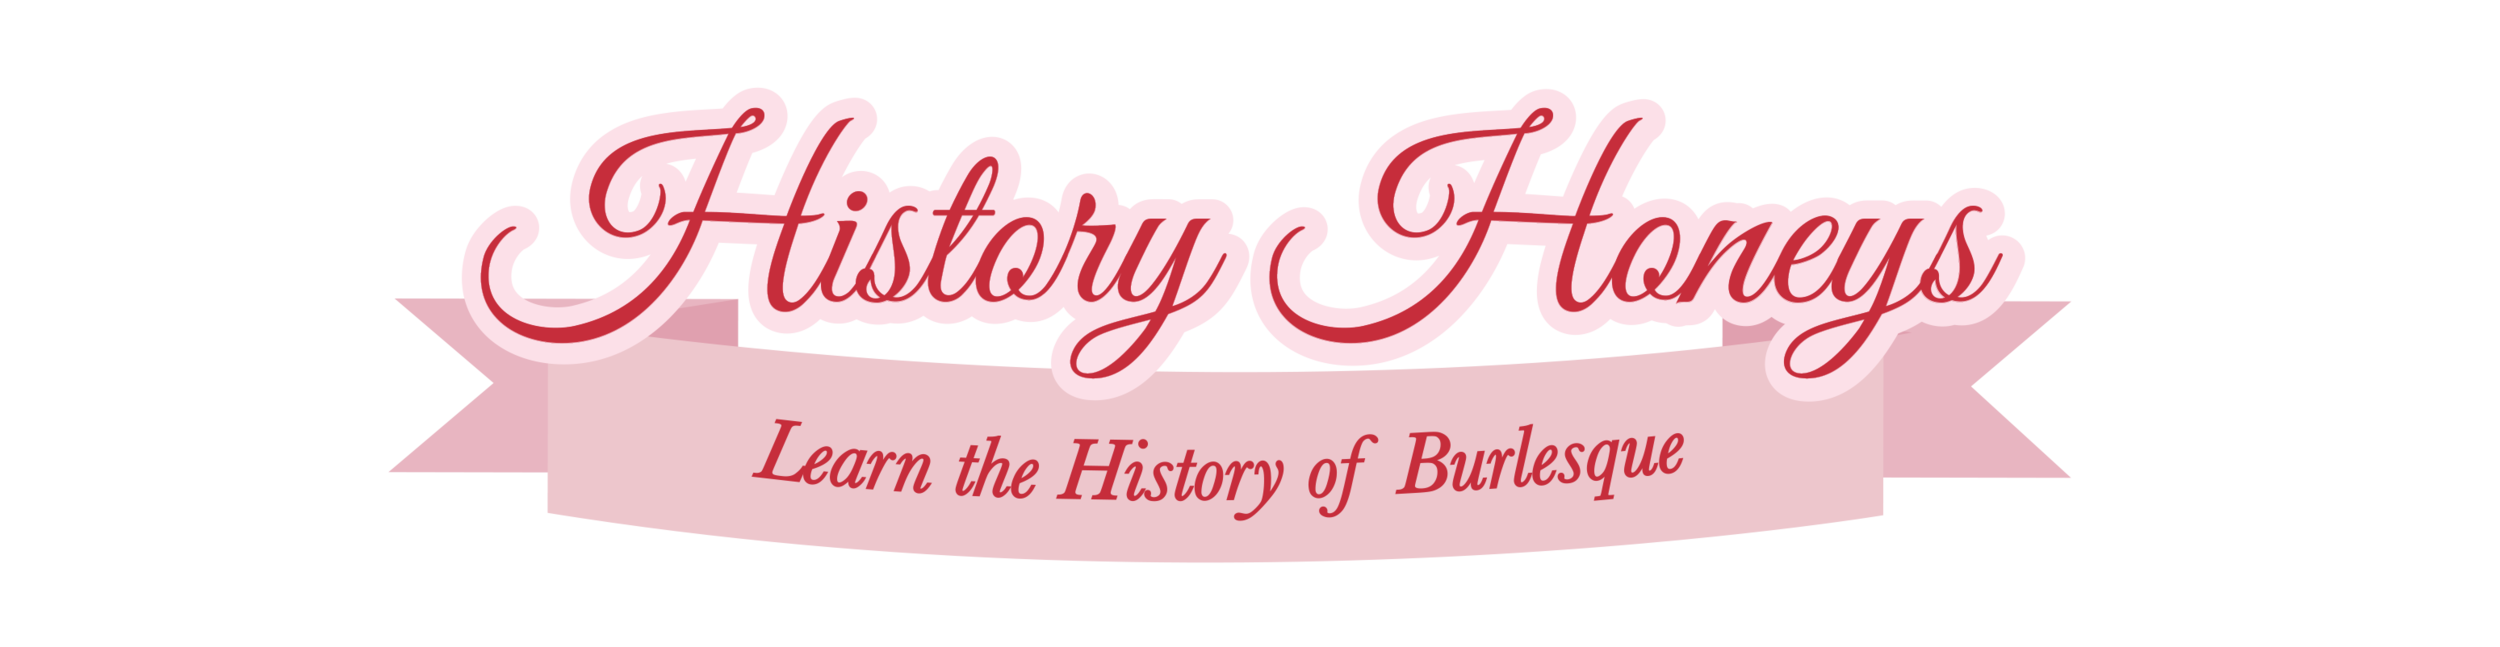 history-honeys-banner.png